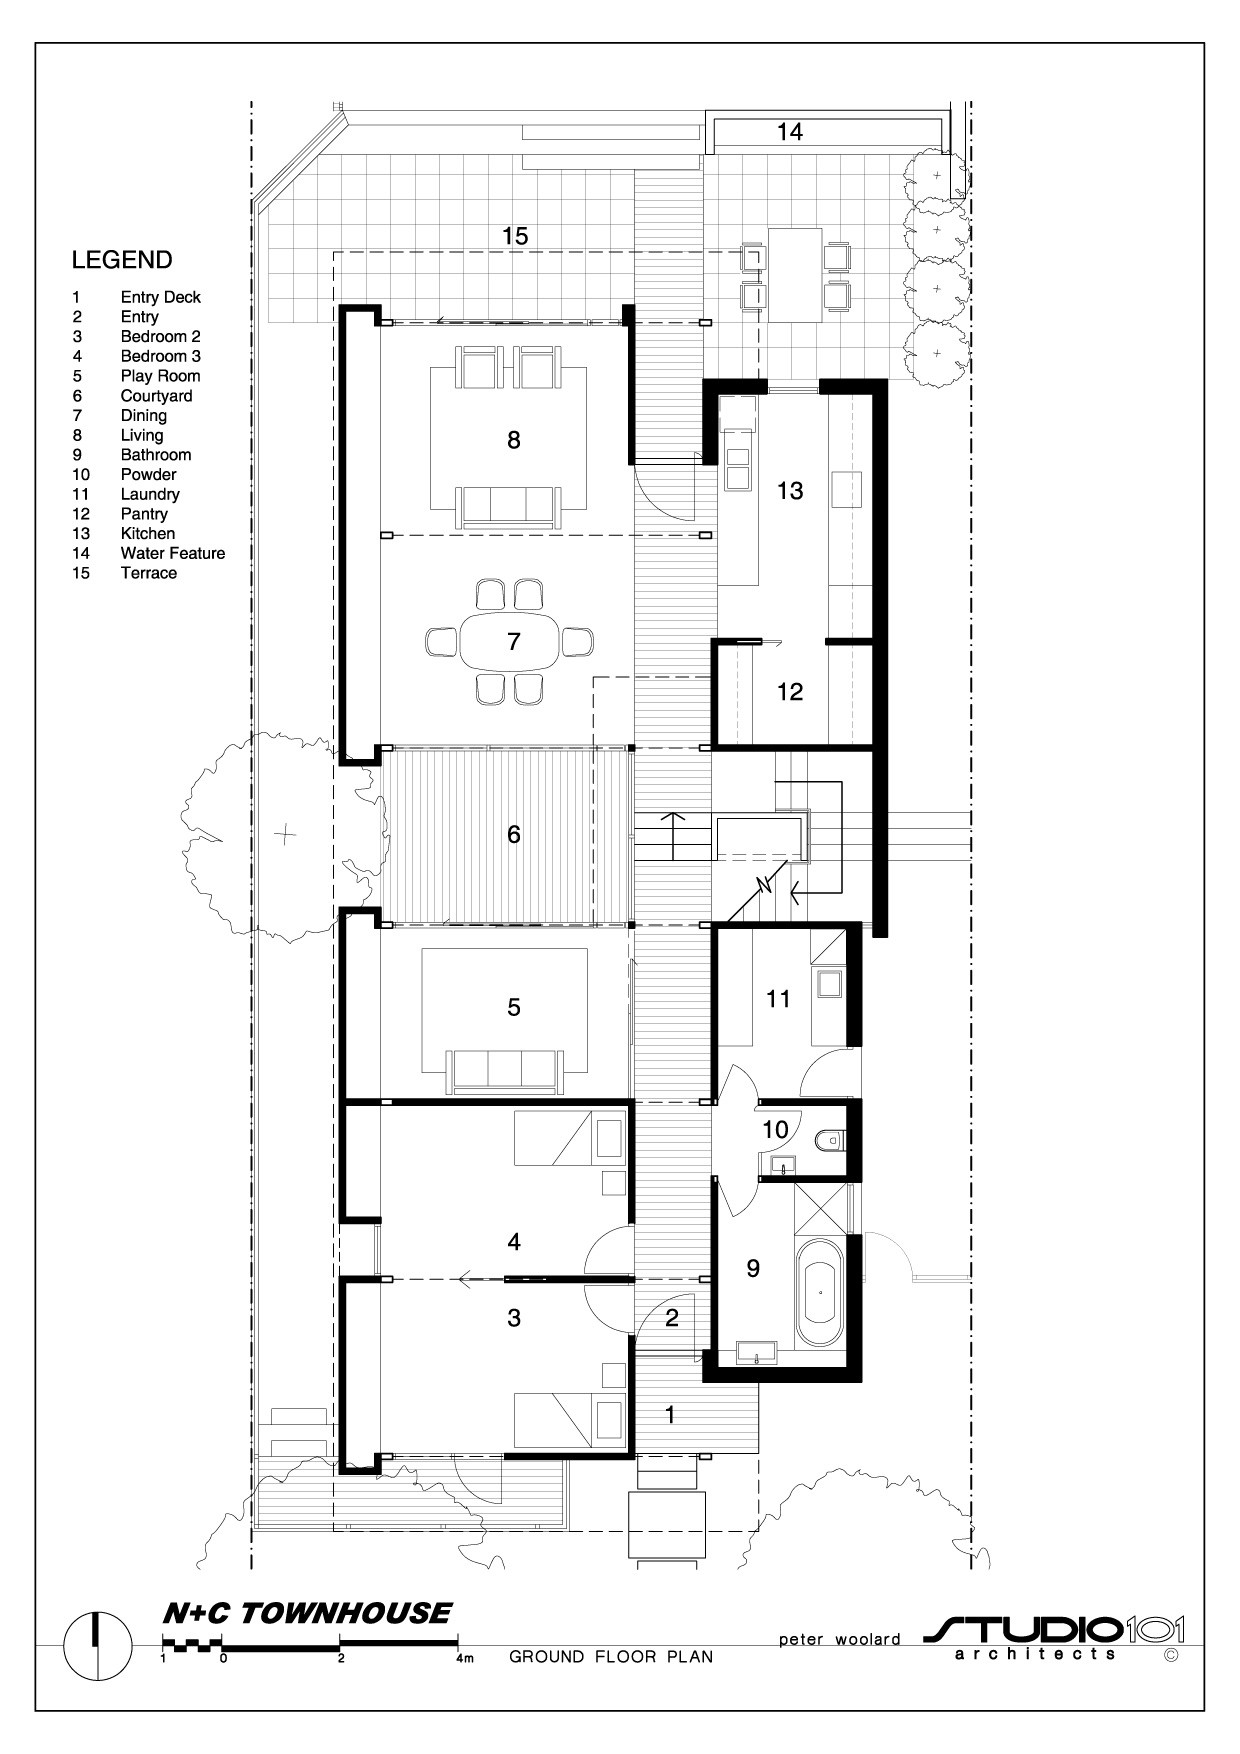 Gallery of n c townhouse studio101 architects 13 for Large townhouse floor plans